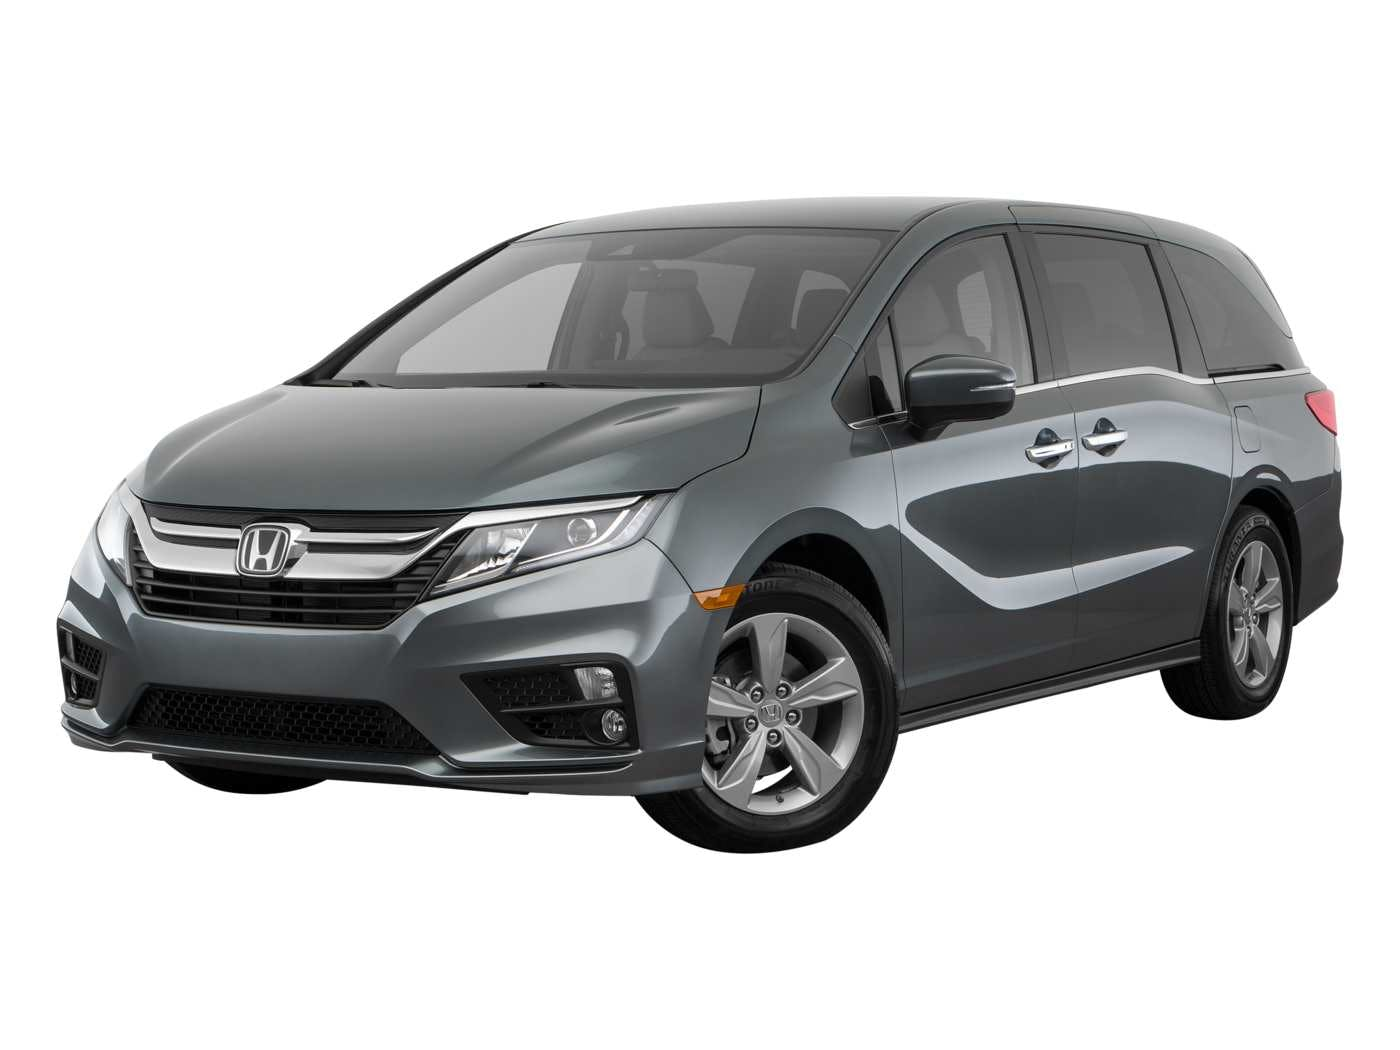 2019 Honda Odyssey Exterior Front Angle View